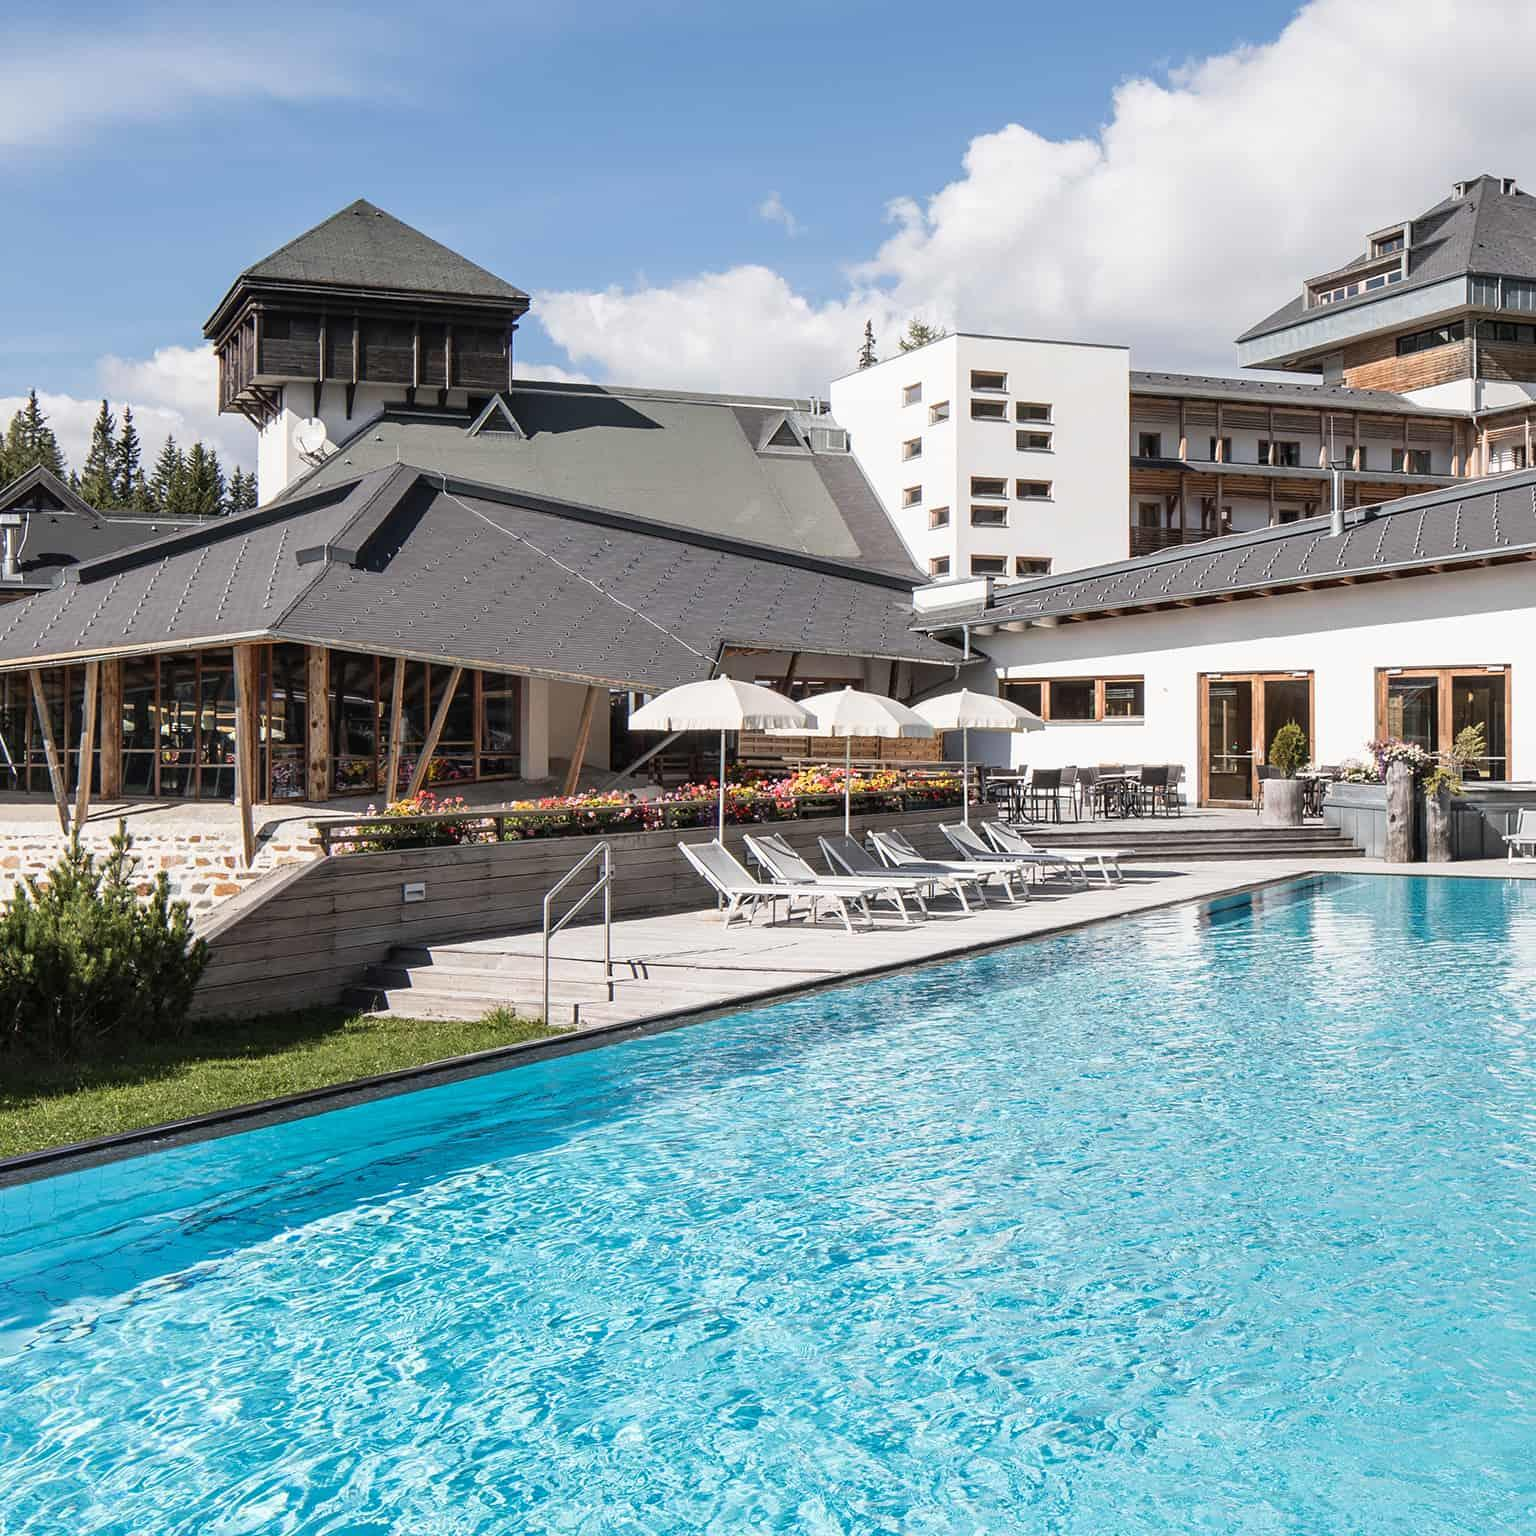 Ferienwohnung Mit Pool Zypern Falkensteiner Hotels Residences Discover Our Hotels In Europe